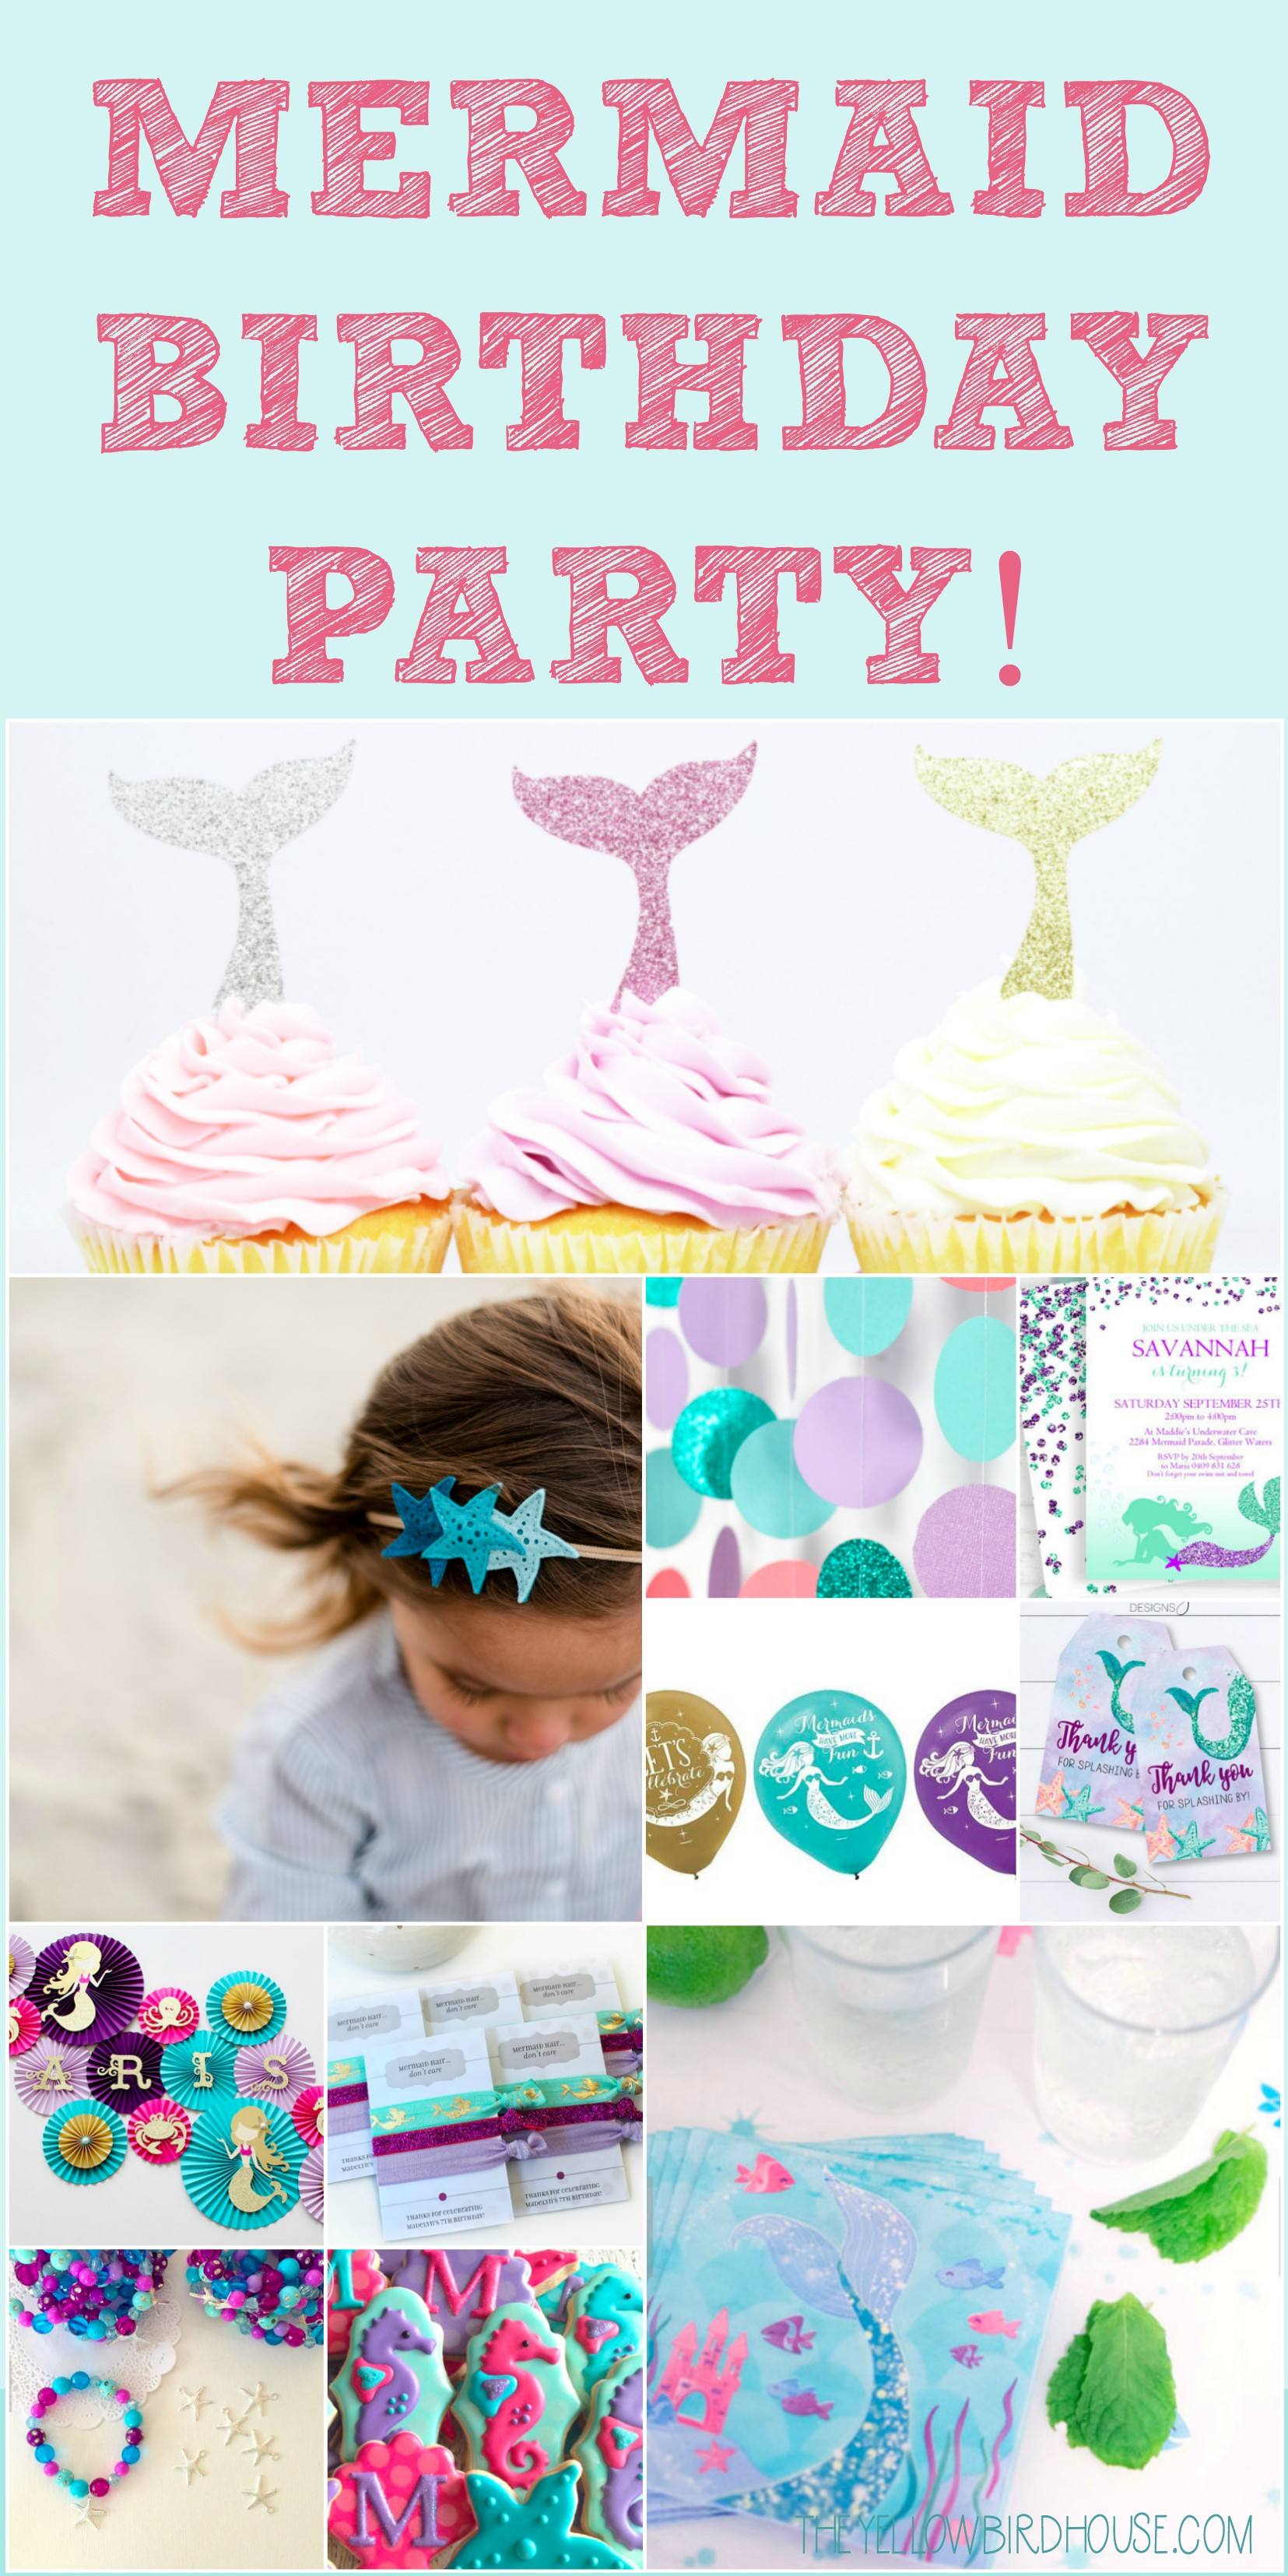 Would you like to throw an amazing mermaid birthday party? Here's is a roundup of all the mermaid-themed party favors, decor and treats you will need to create an incredible mermaid party!